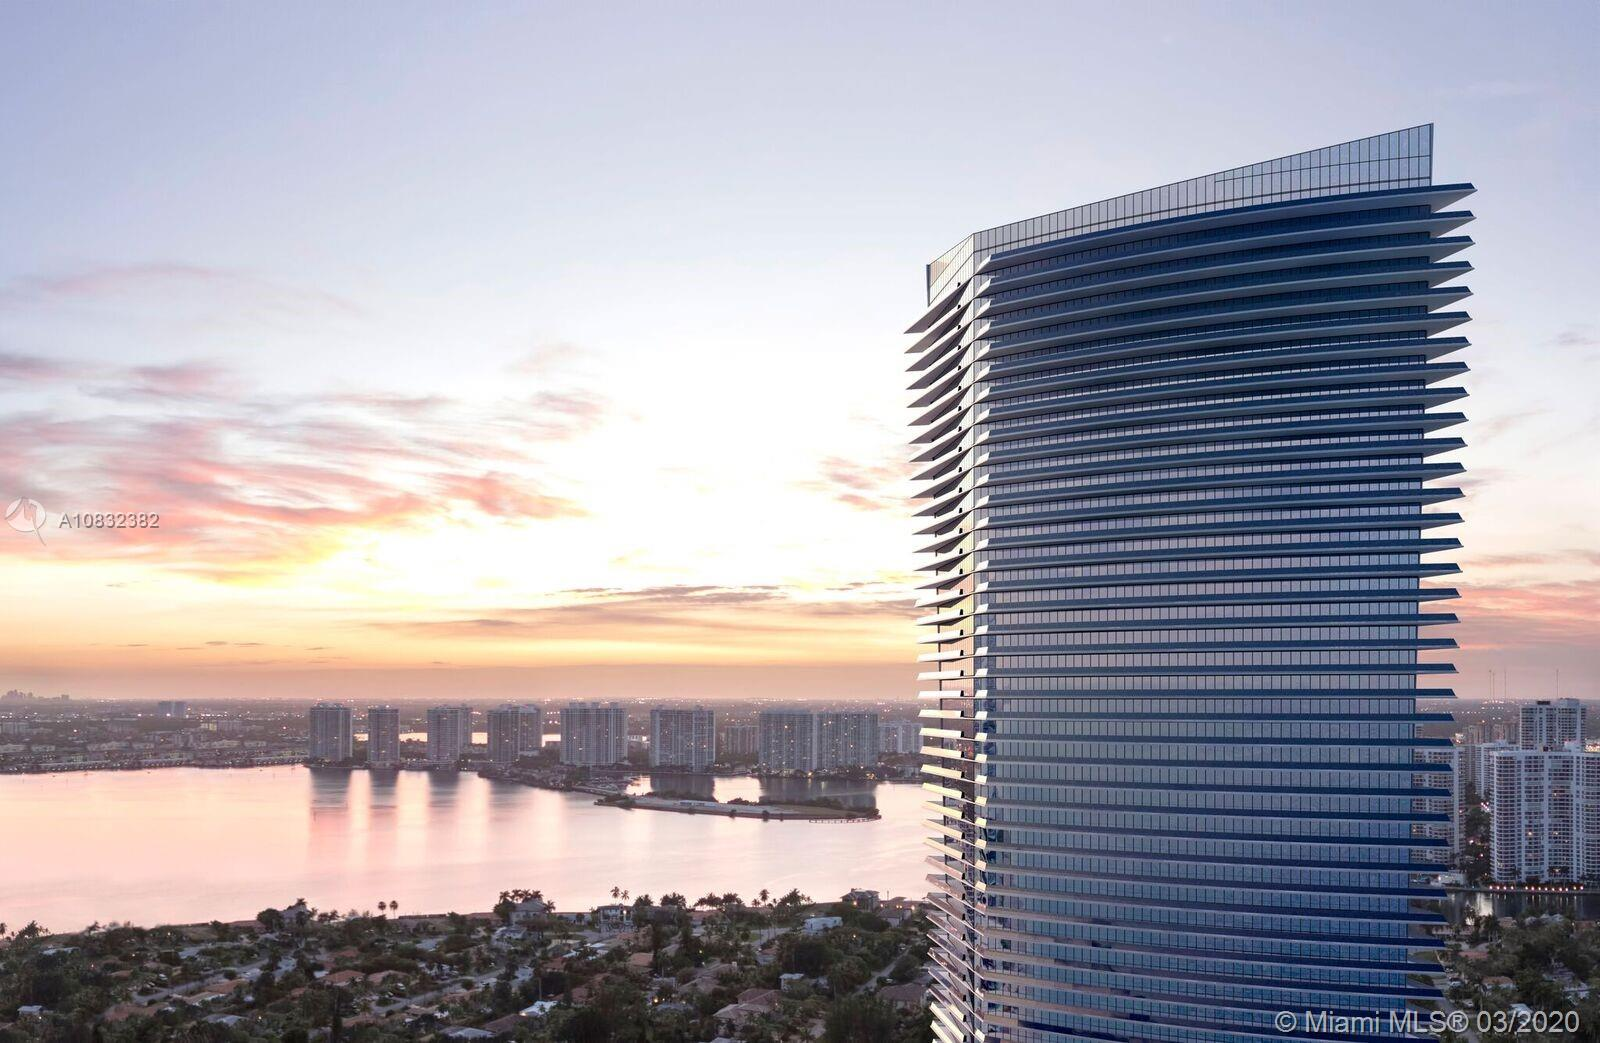 18975 Collins Ave, Unit #4700 Luxury Real Estate